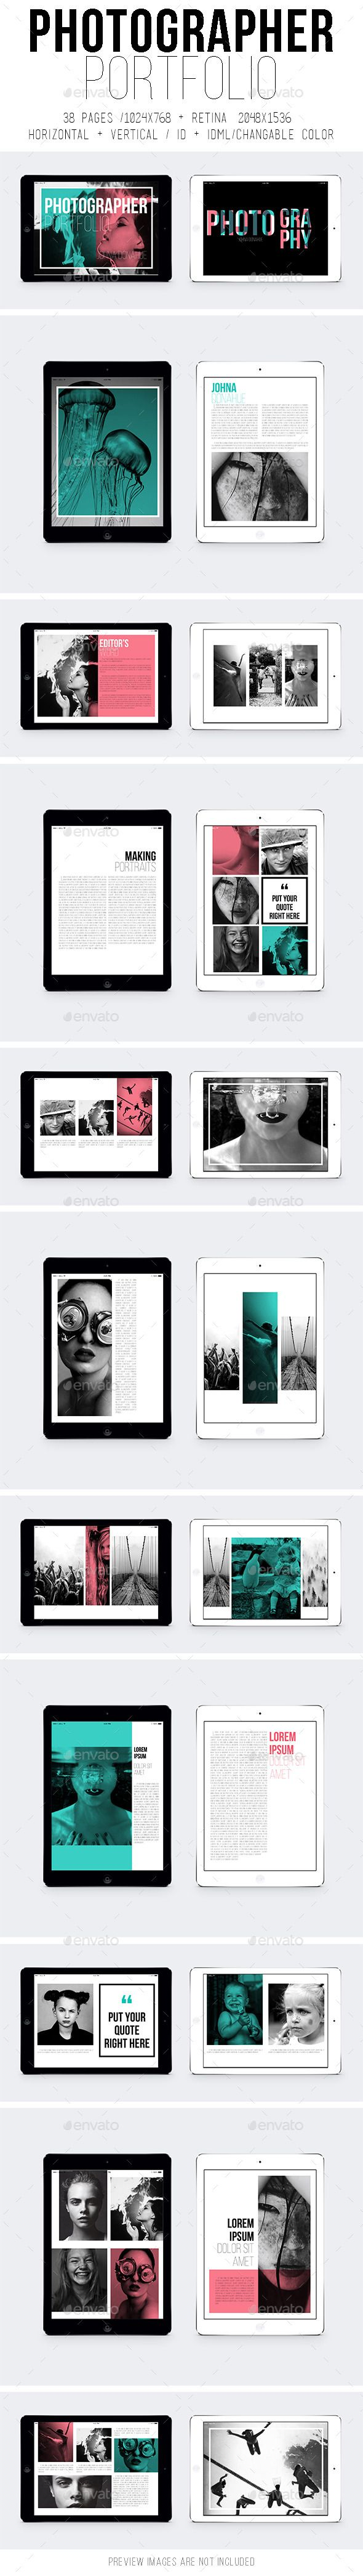 Ipad & Tablet Photographer Portfolio Template #eportfolio #emagazine Download: http://graphicriver.net/item/ipad-tablet-photographer-portfolio/10465263?ref=ksioks